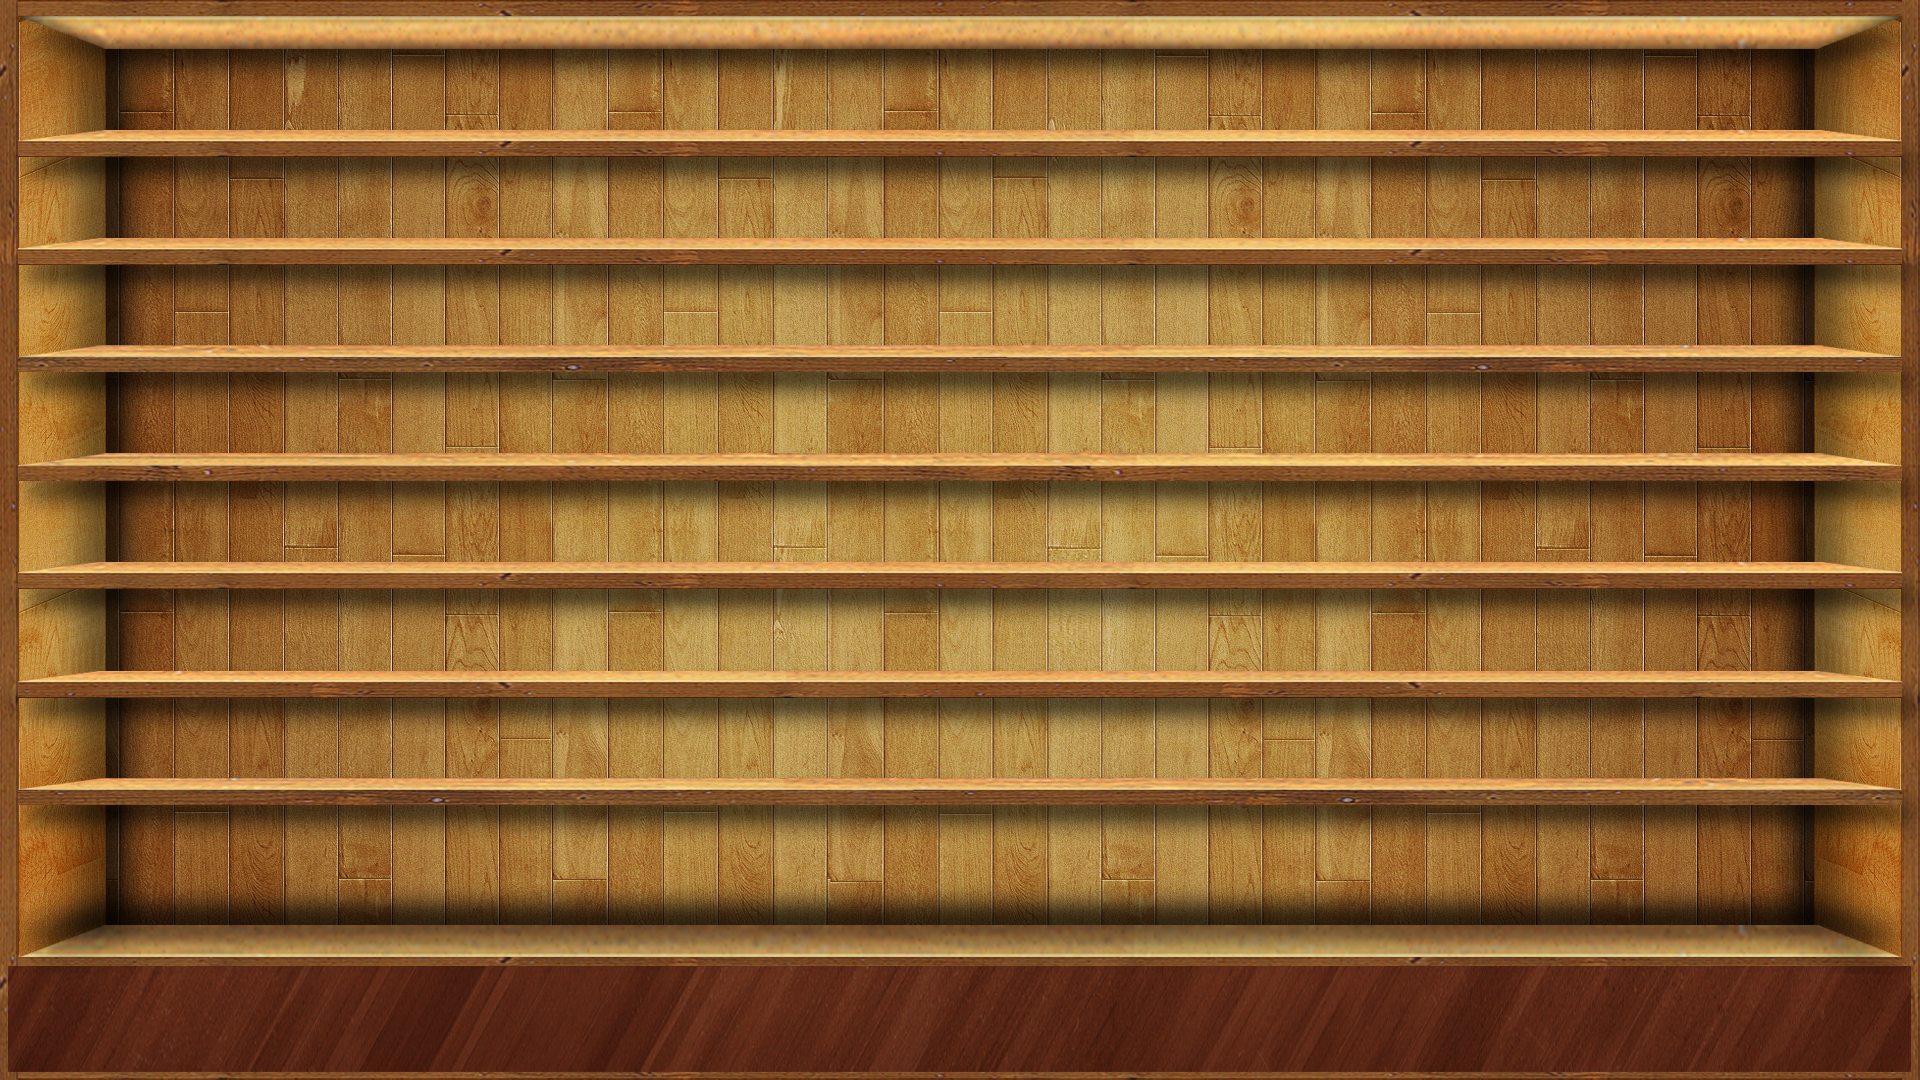 Wood Shelves Wallpaper By Samirpa On Deviantart Wallpaper Shelves Wood Wallpaper Shelves